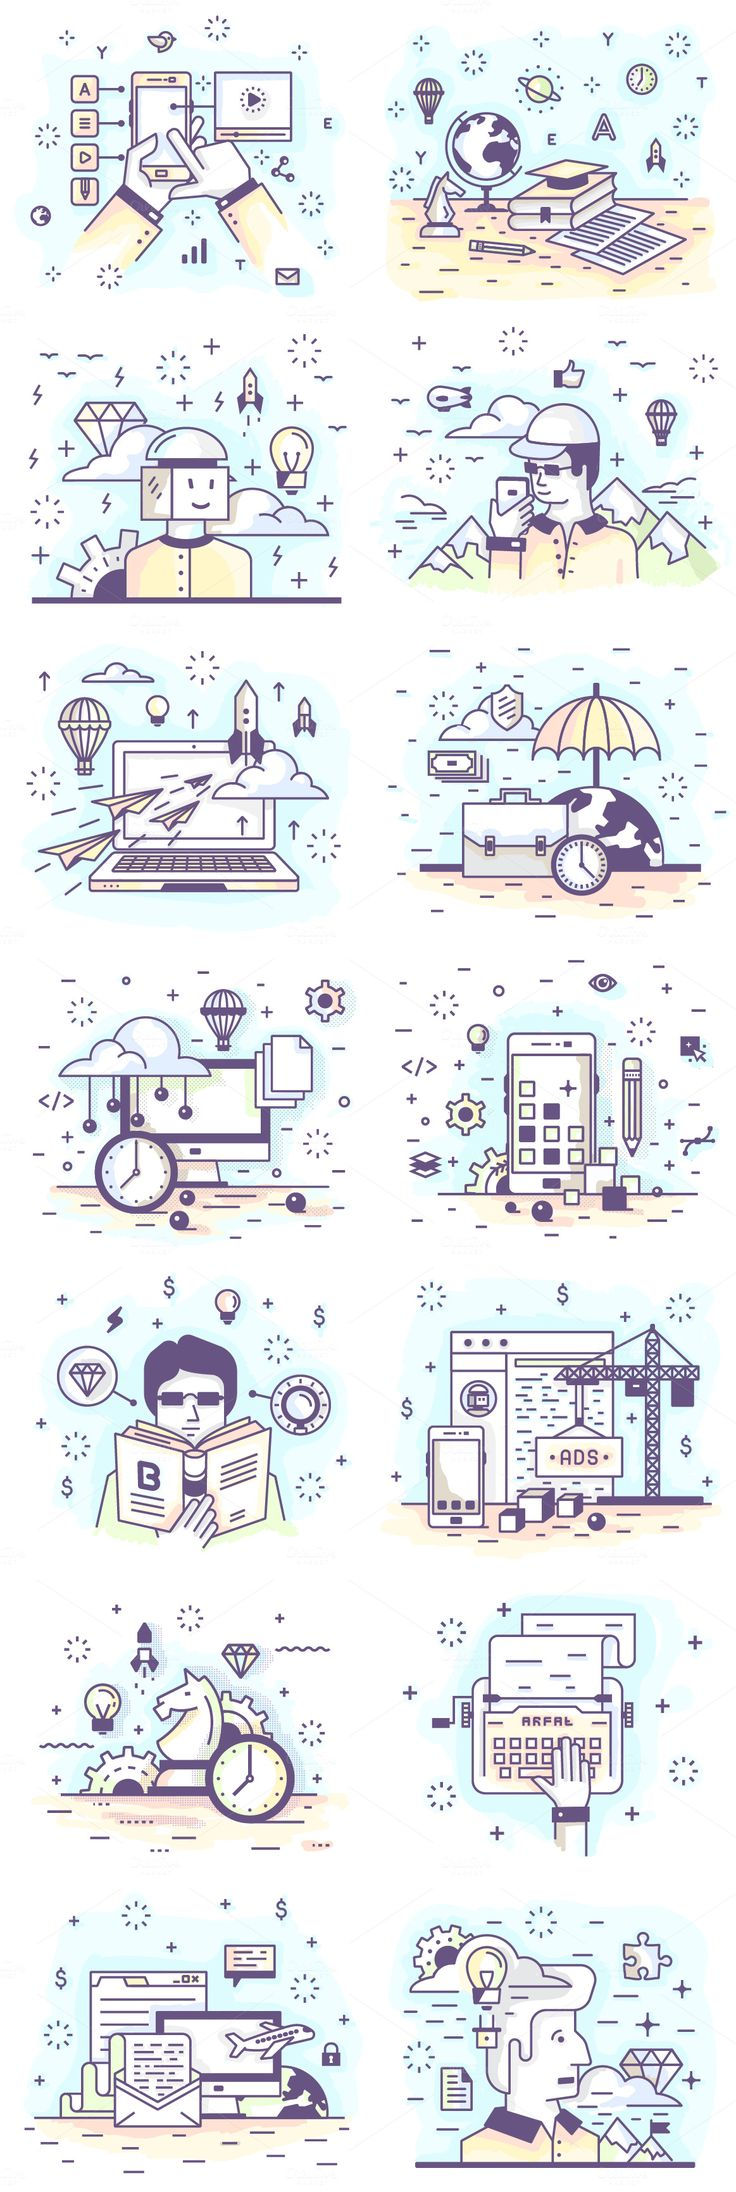 How adorable are these 28 Mini Illustrations? Line vector illustrations, illustration,	banner,	concept,	web, business,	design,	creative,	education, technology,	science,	startup,	writing, skill development,	seo,	management, reading,	strategy,	game,	support, development,	video,	applications, programming,	travel,	mobile,	apps, trade,	finance,	set,	line,	flat